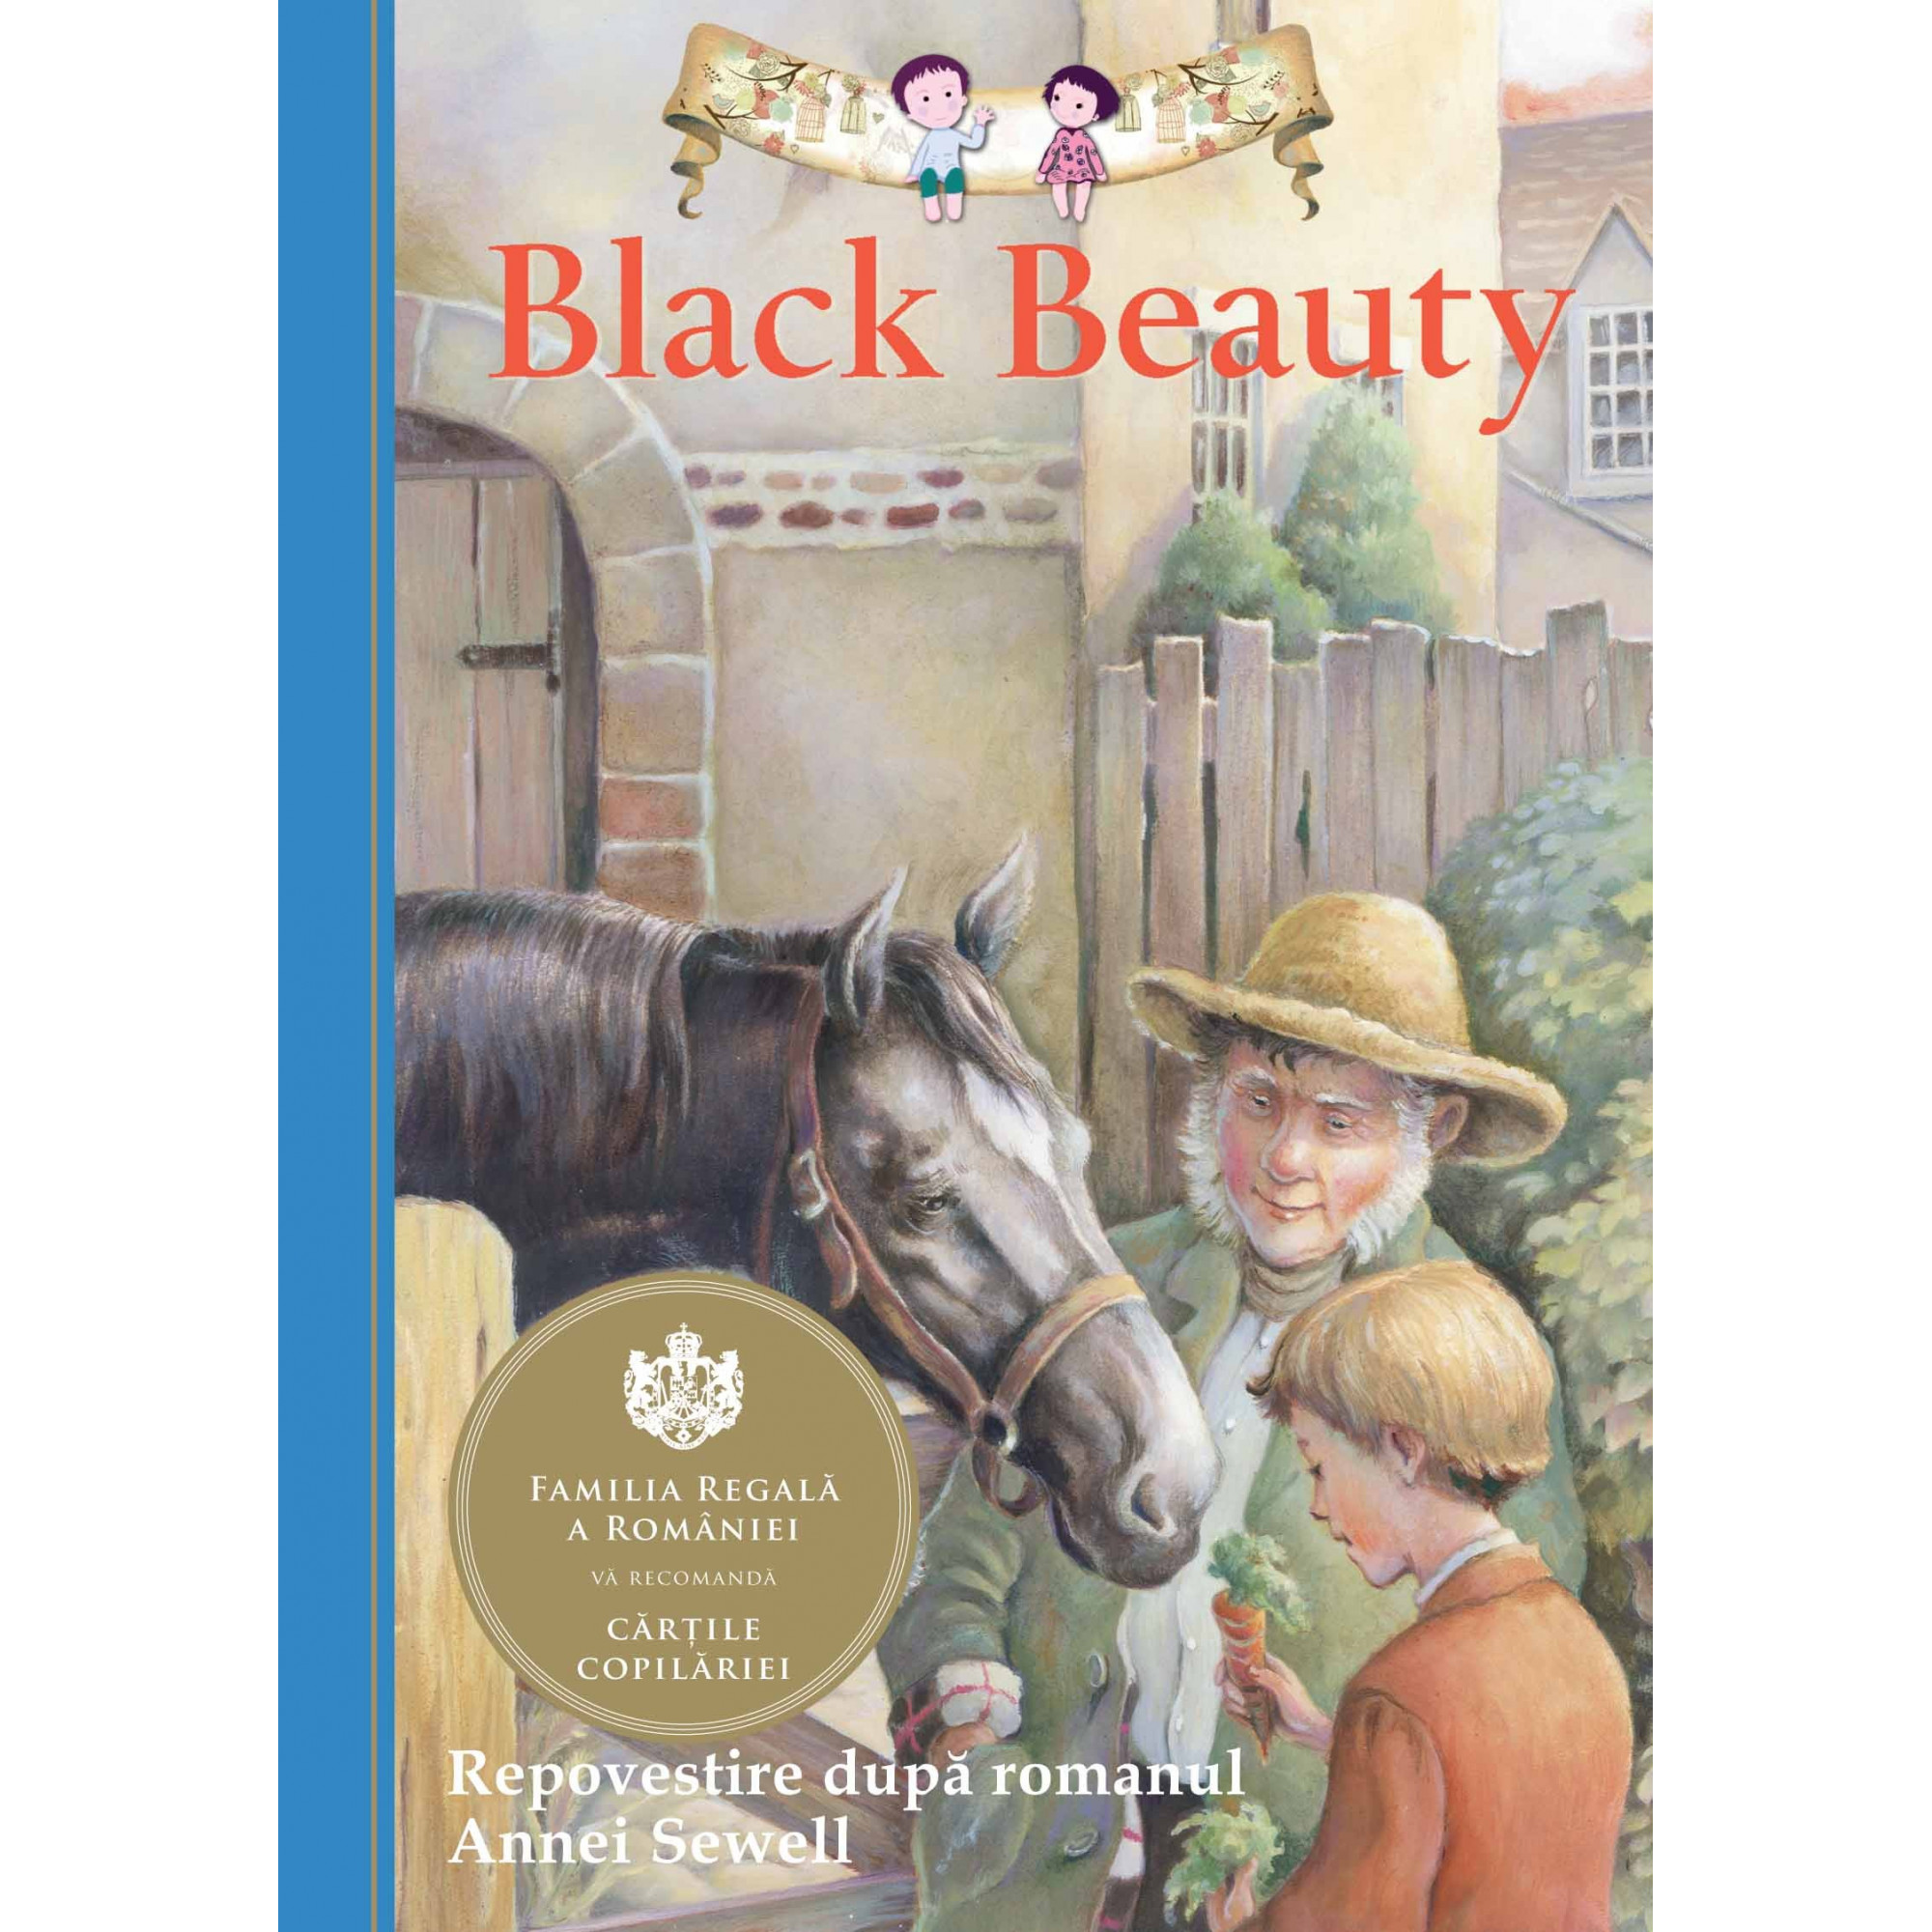 Black Beauty. Repovestire după romanul Annei Sewell. Ed a III-a; Lisa Church